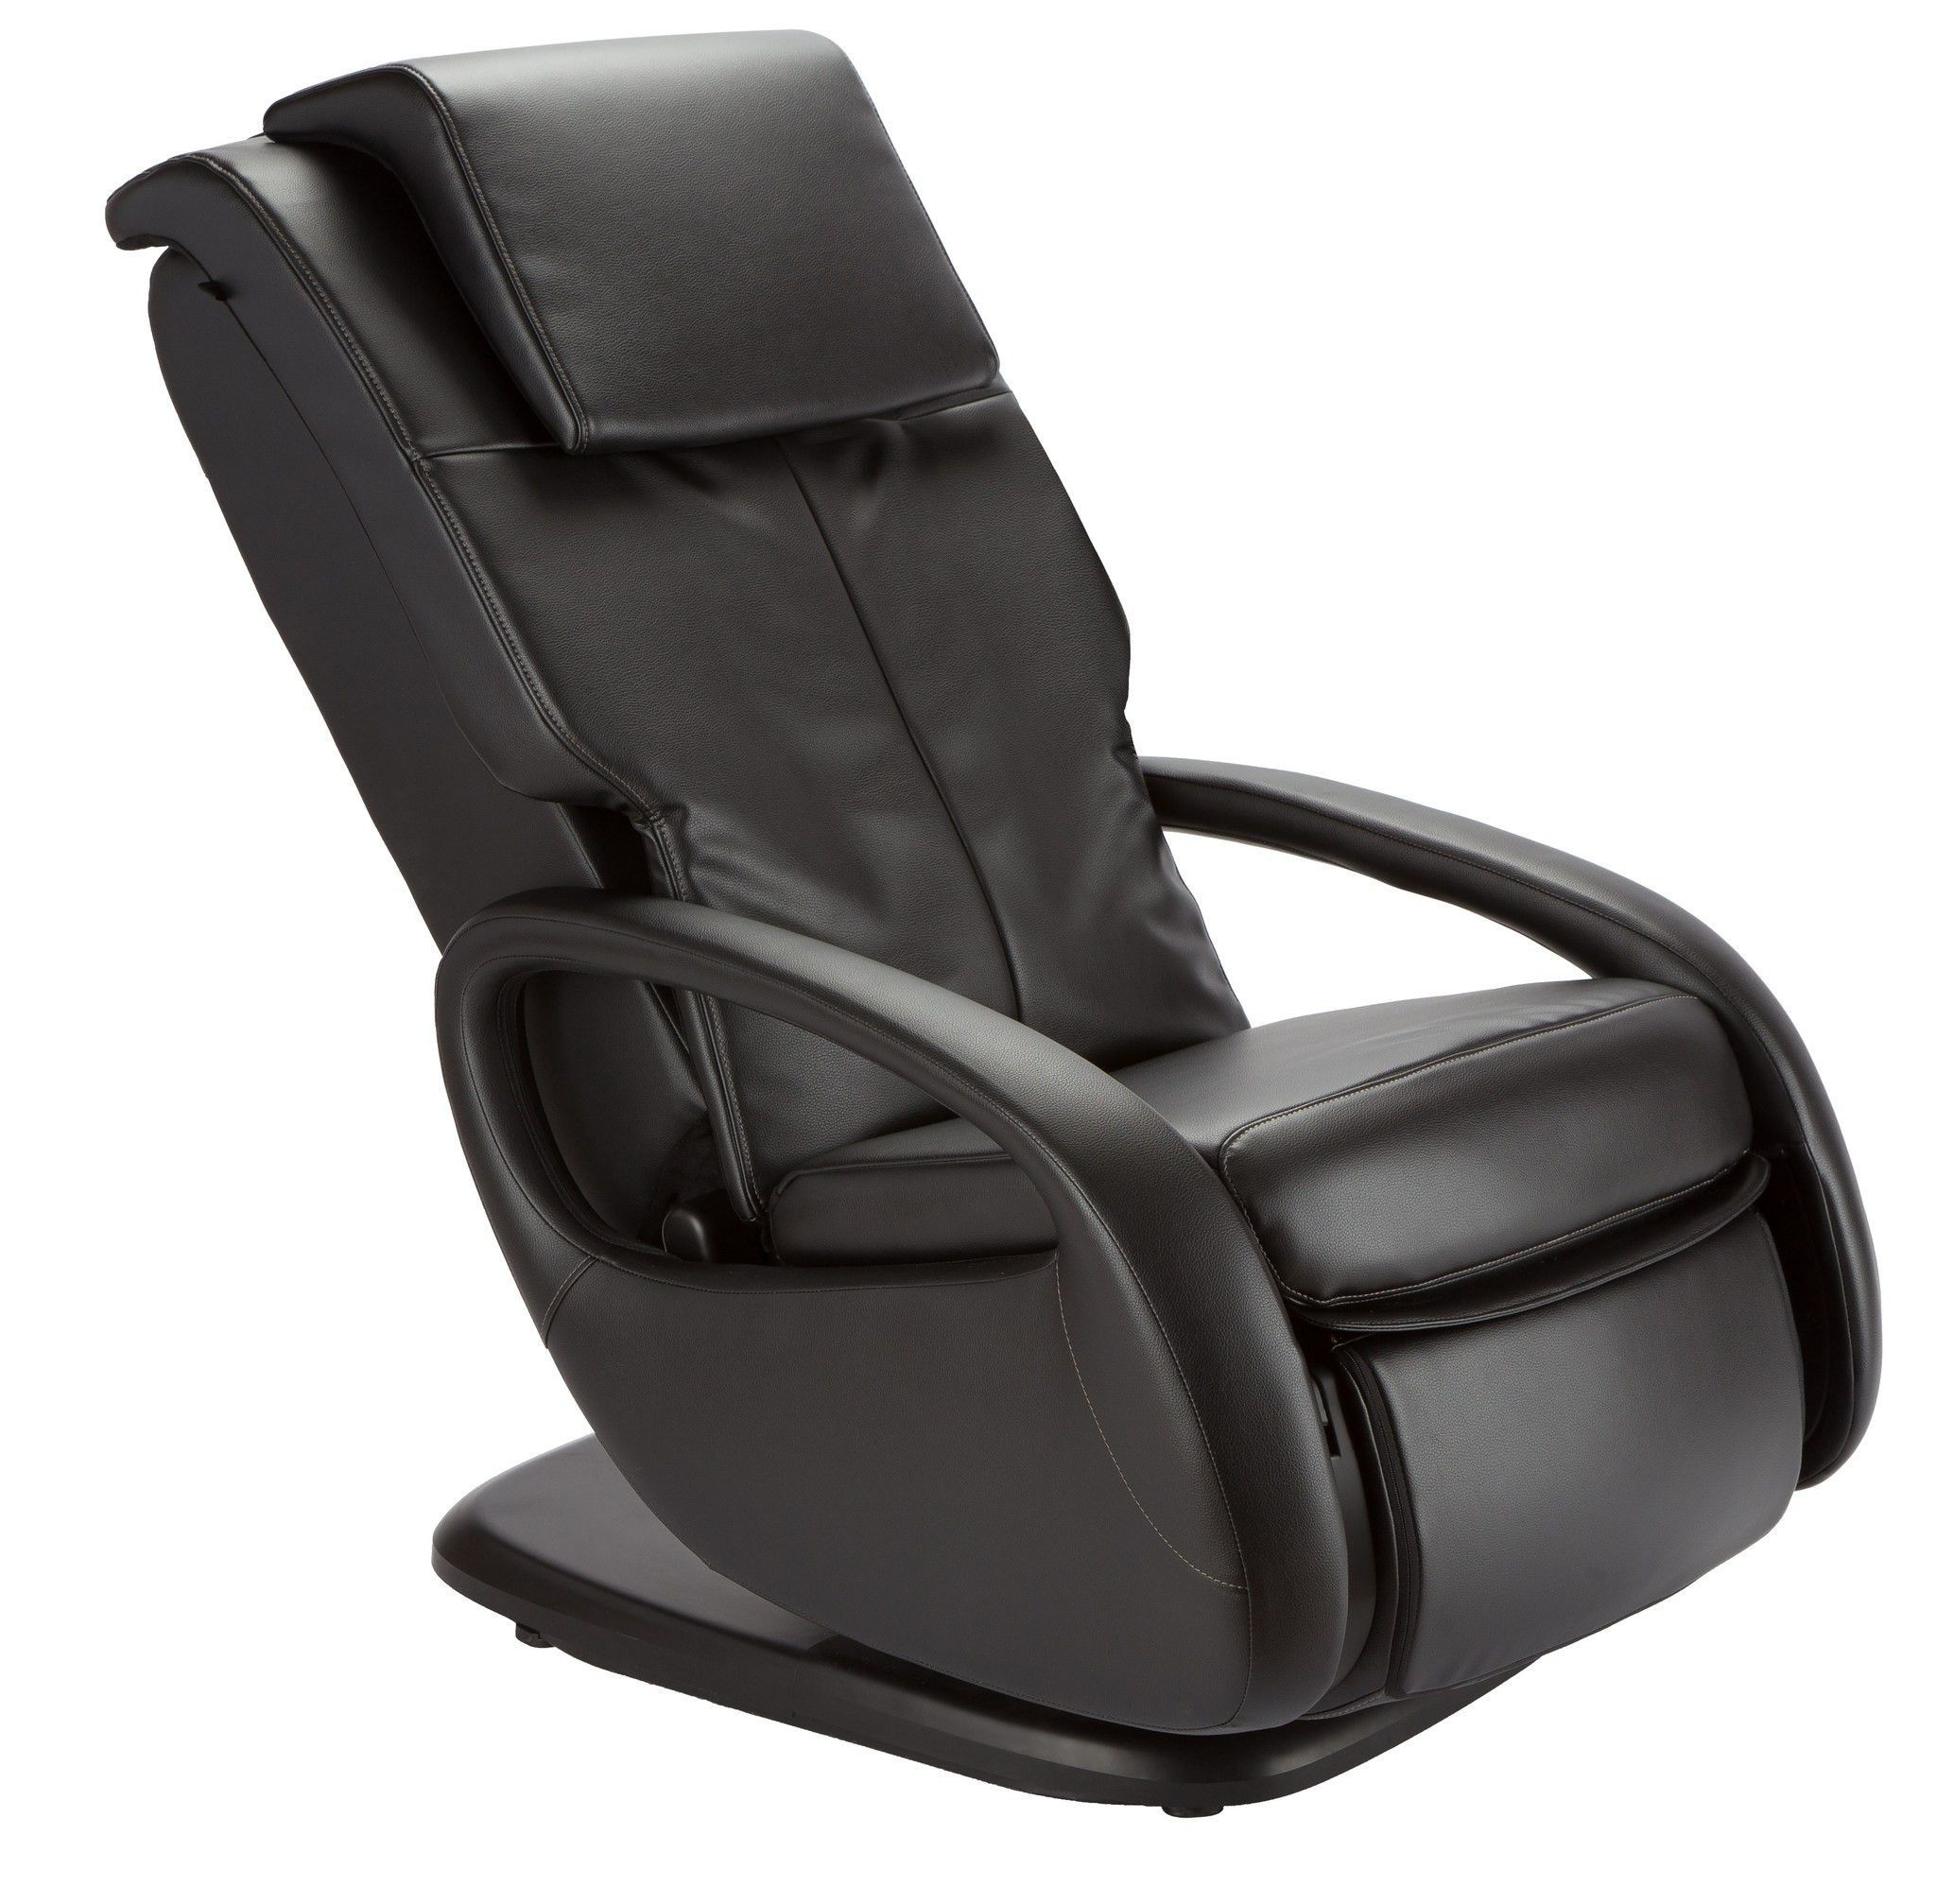 best for chair chairs comparisons pin massage sale sales reviews